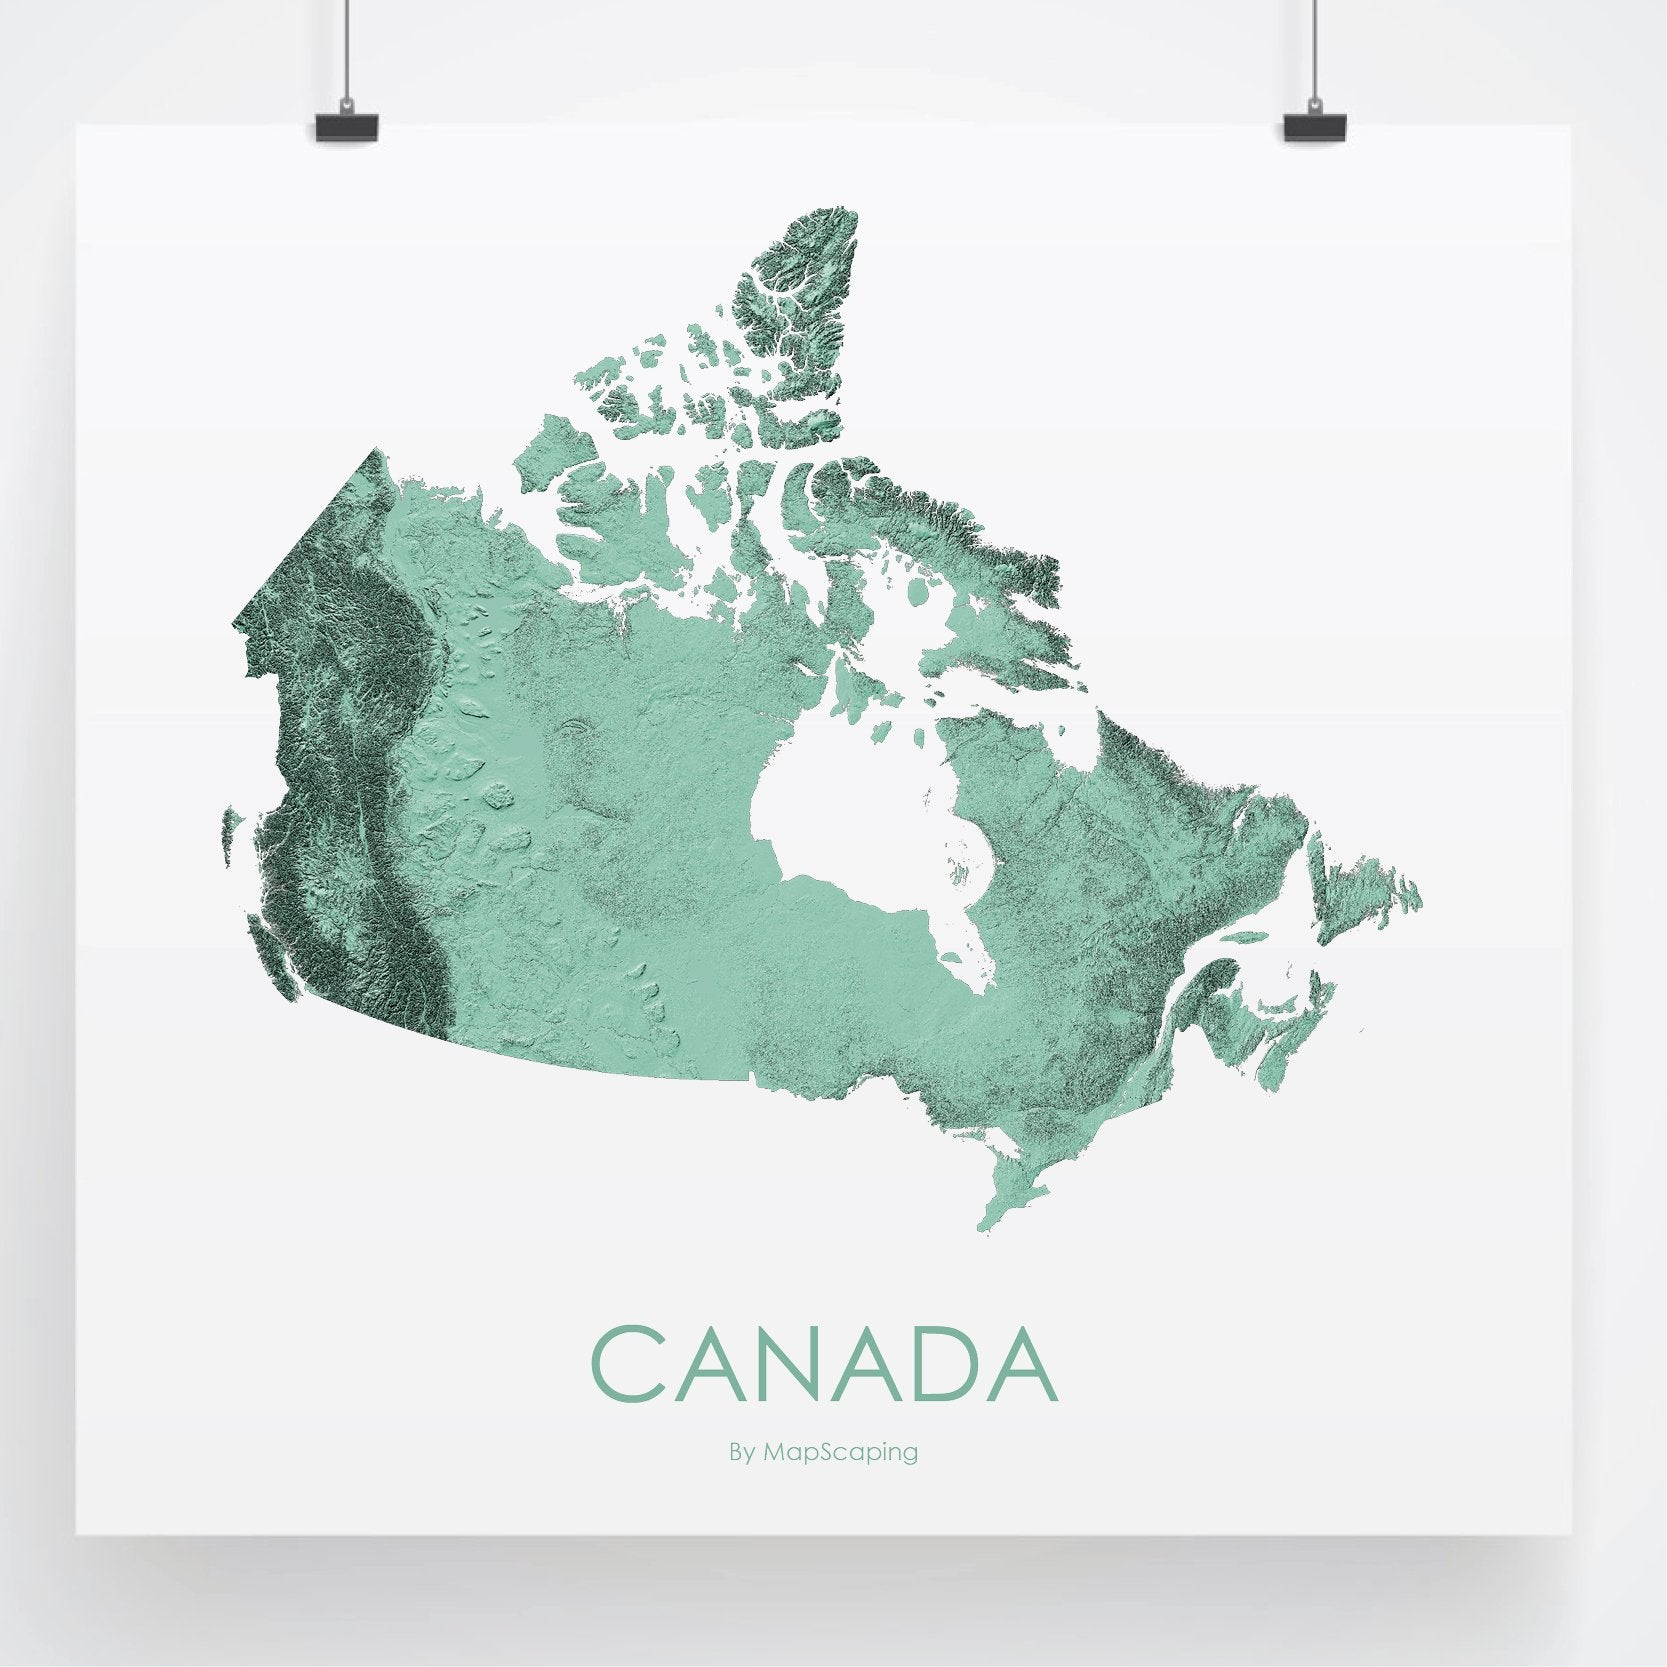 Map Of Canada 3d.Canada Map 3d Mint